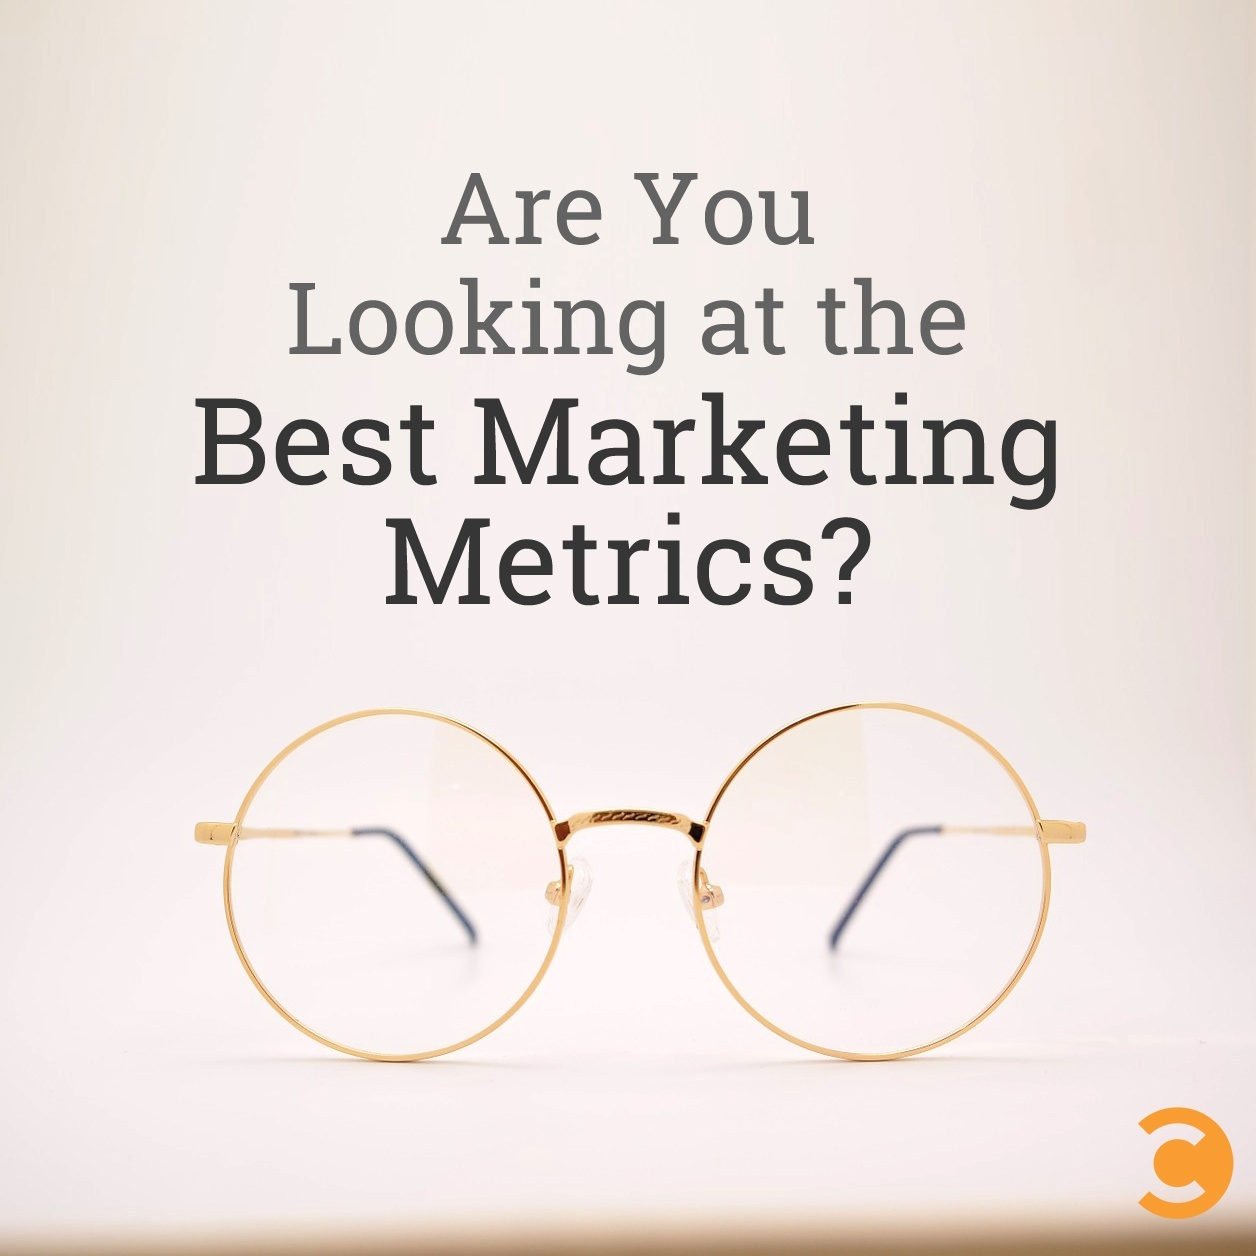 Are You Looking at the Best Marketing Metrics?